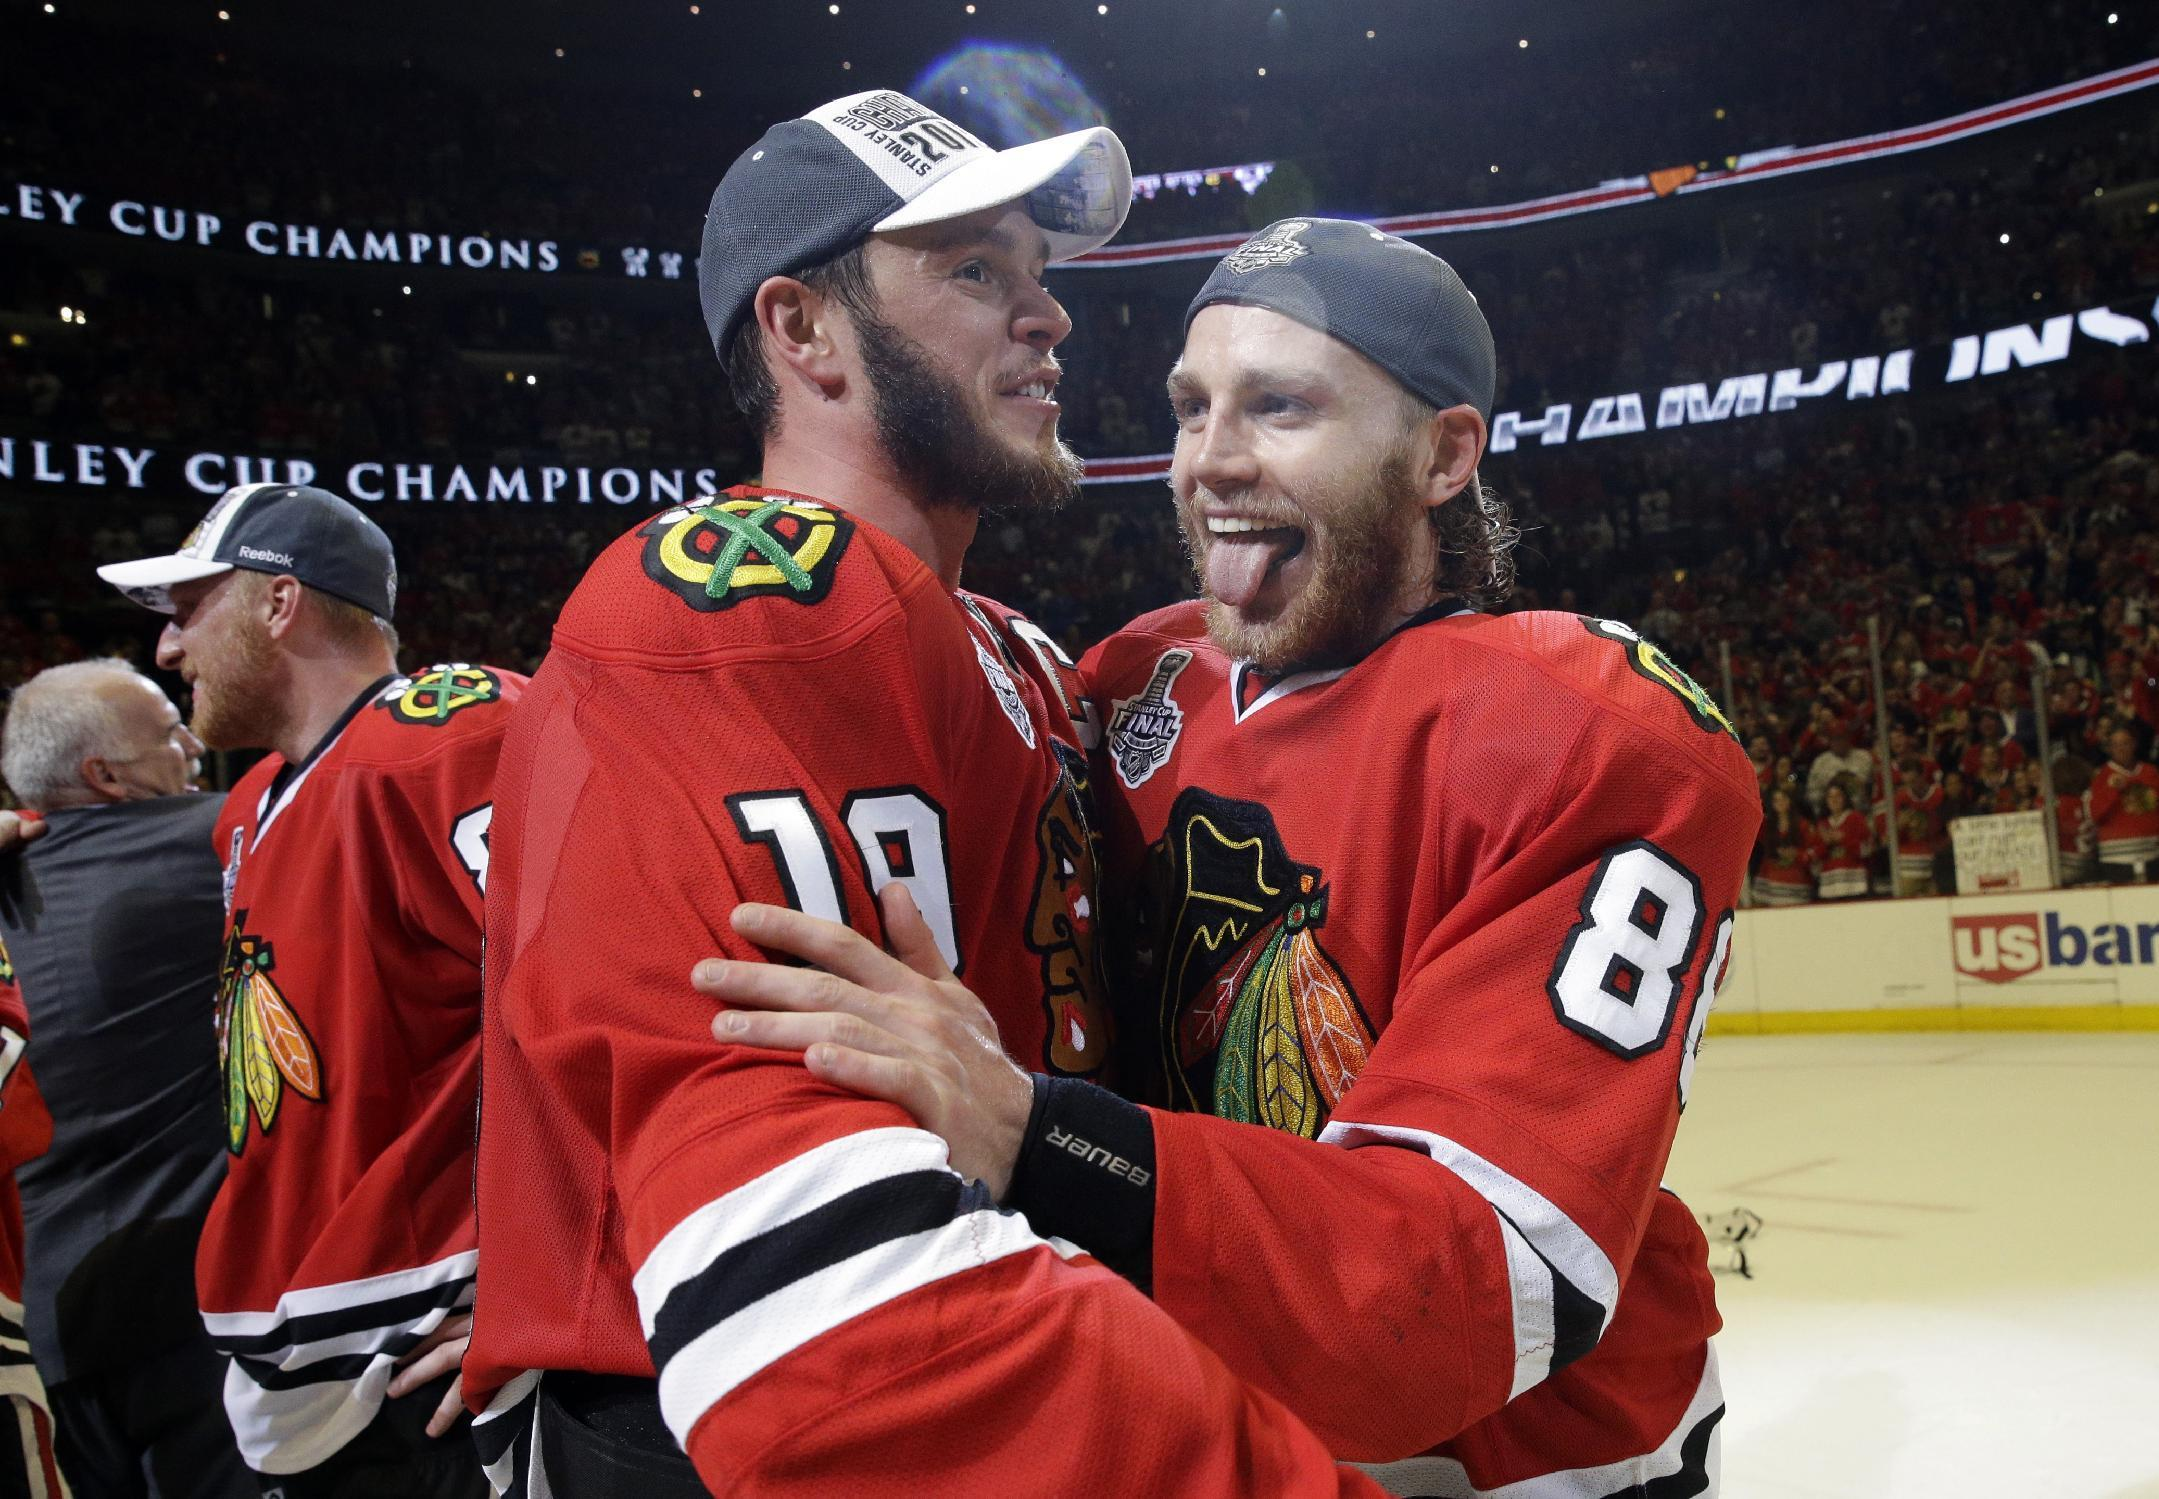 Jonathan Toews on Patrick Kane situation: 'You stay together as a team'